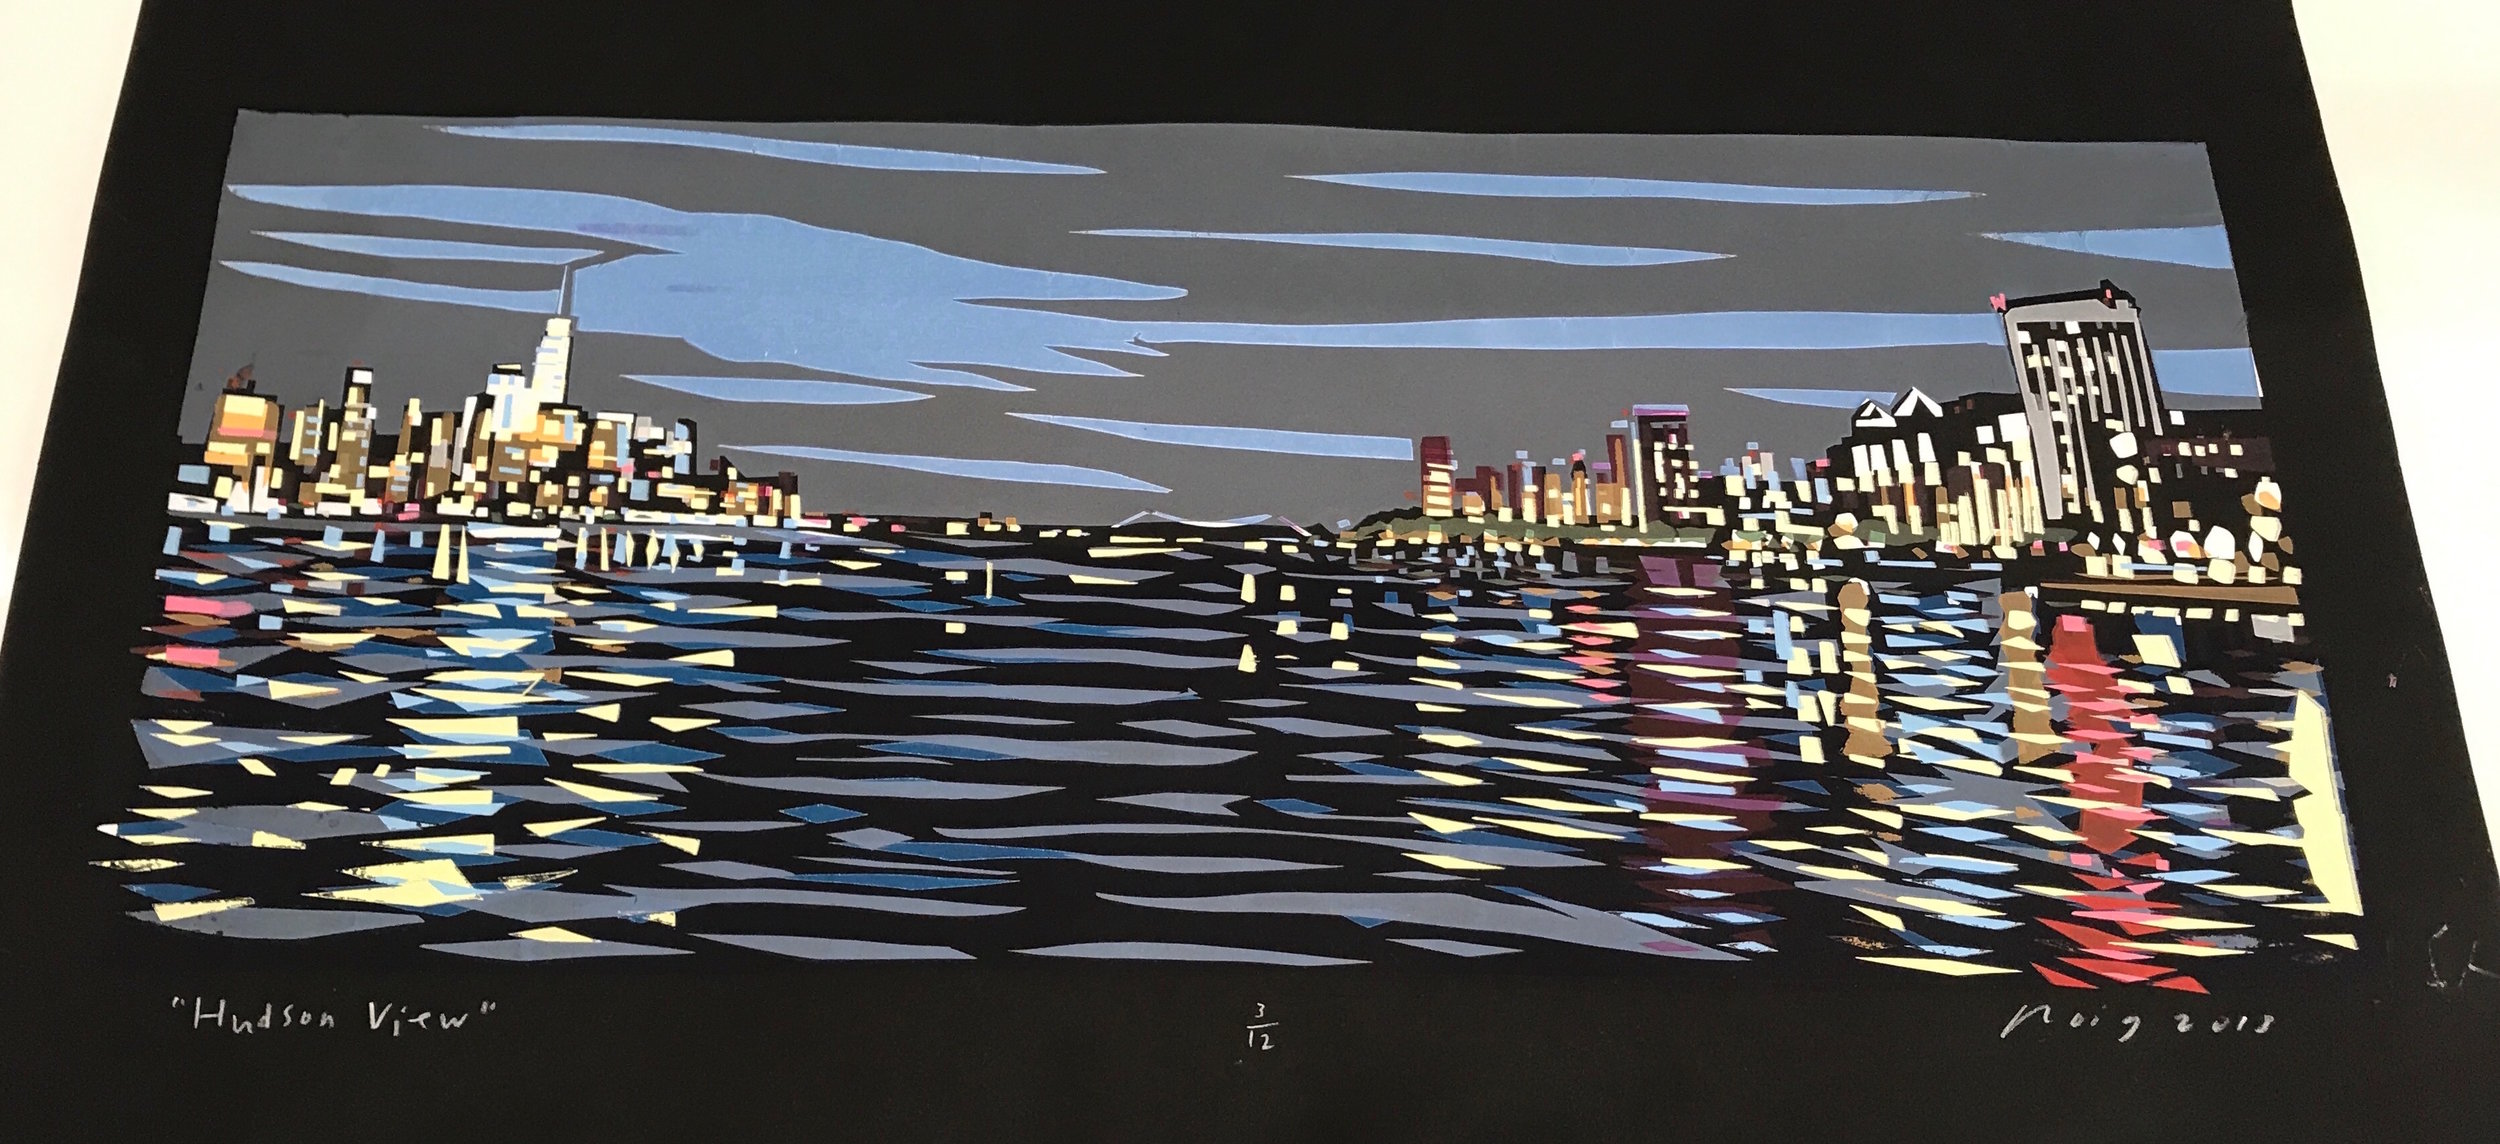 """New to the collection, """"Hudson View"""". Info@RoigCollection.com"""